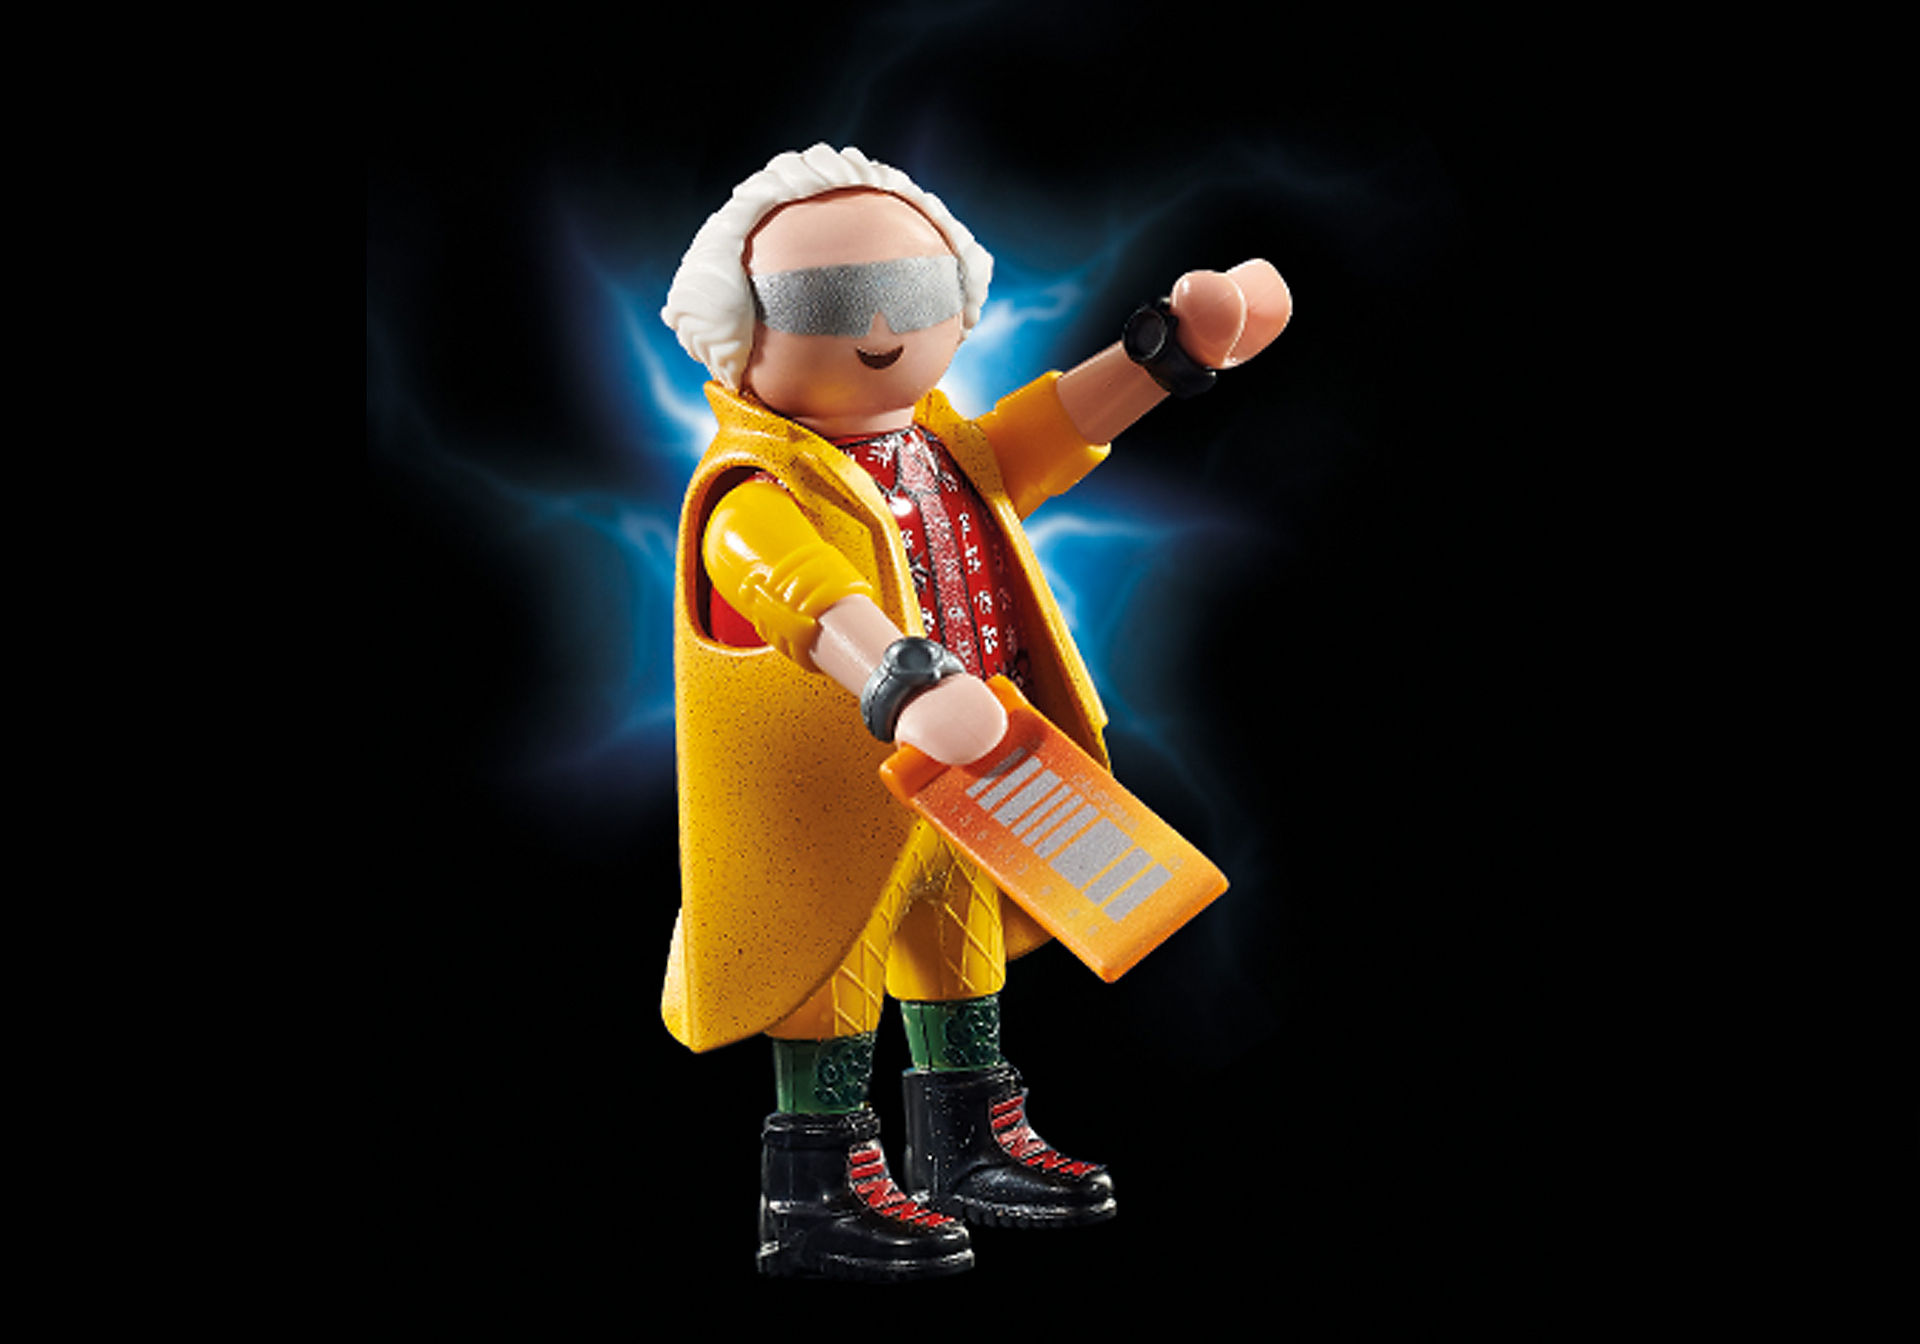 70634 Back to the Future Part II Hoverboard Chase zoom image8